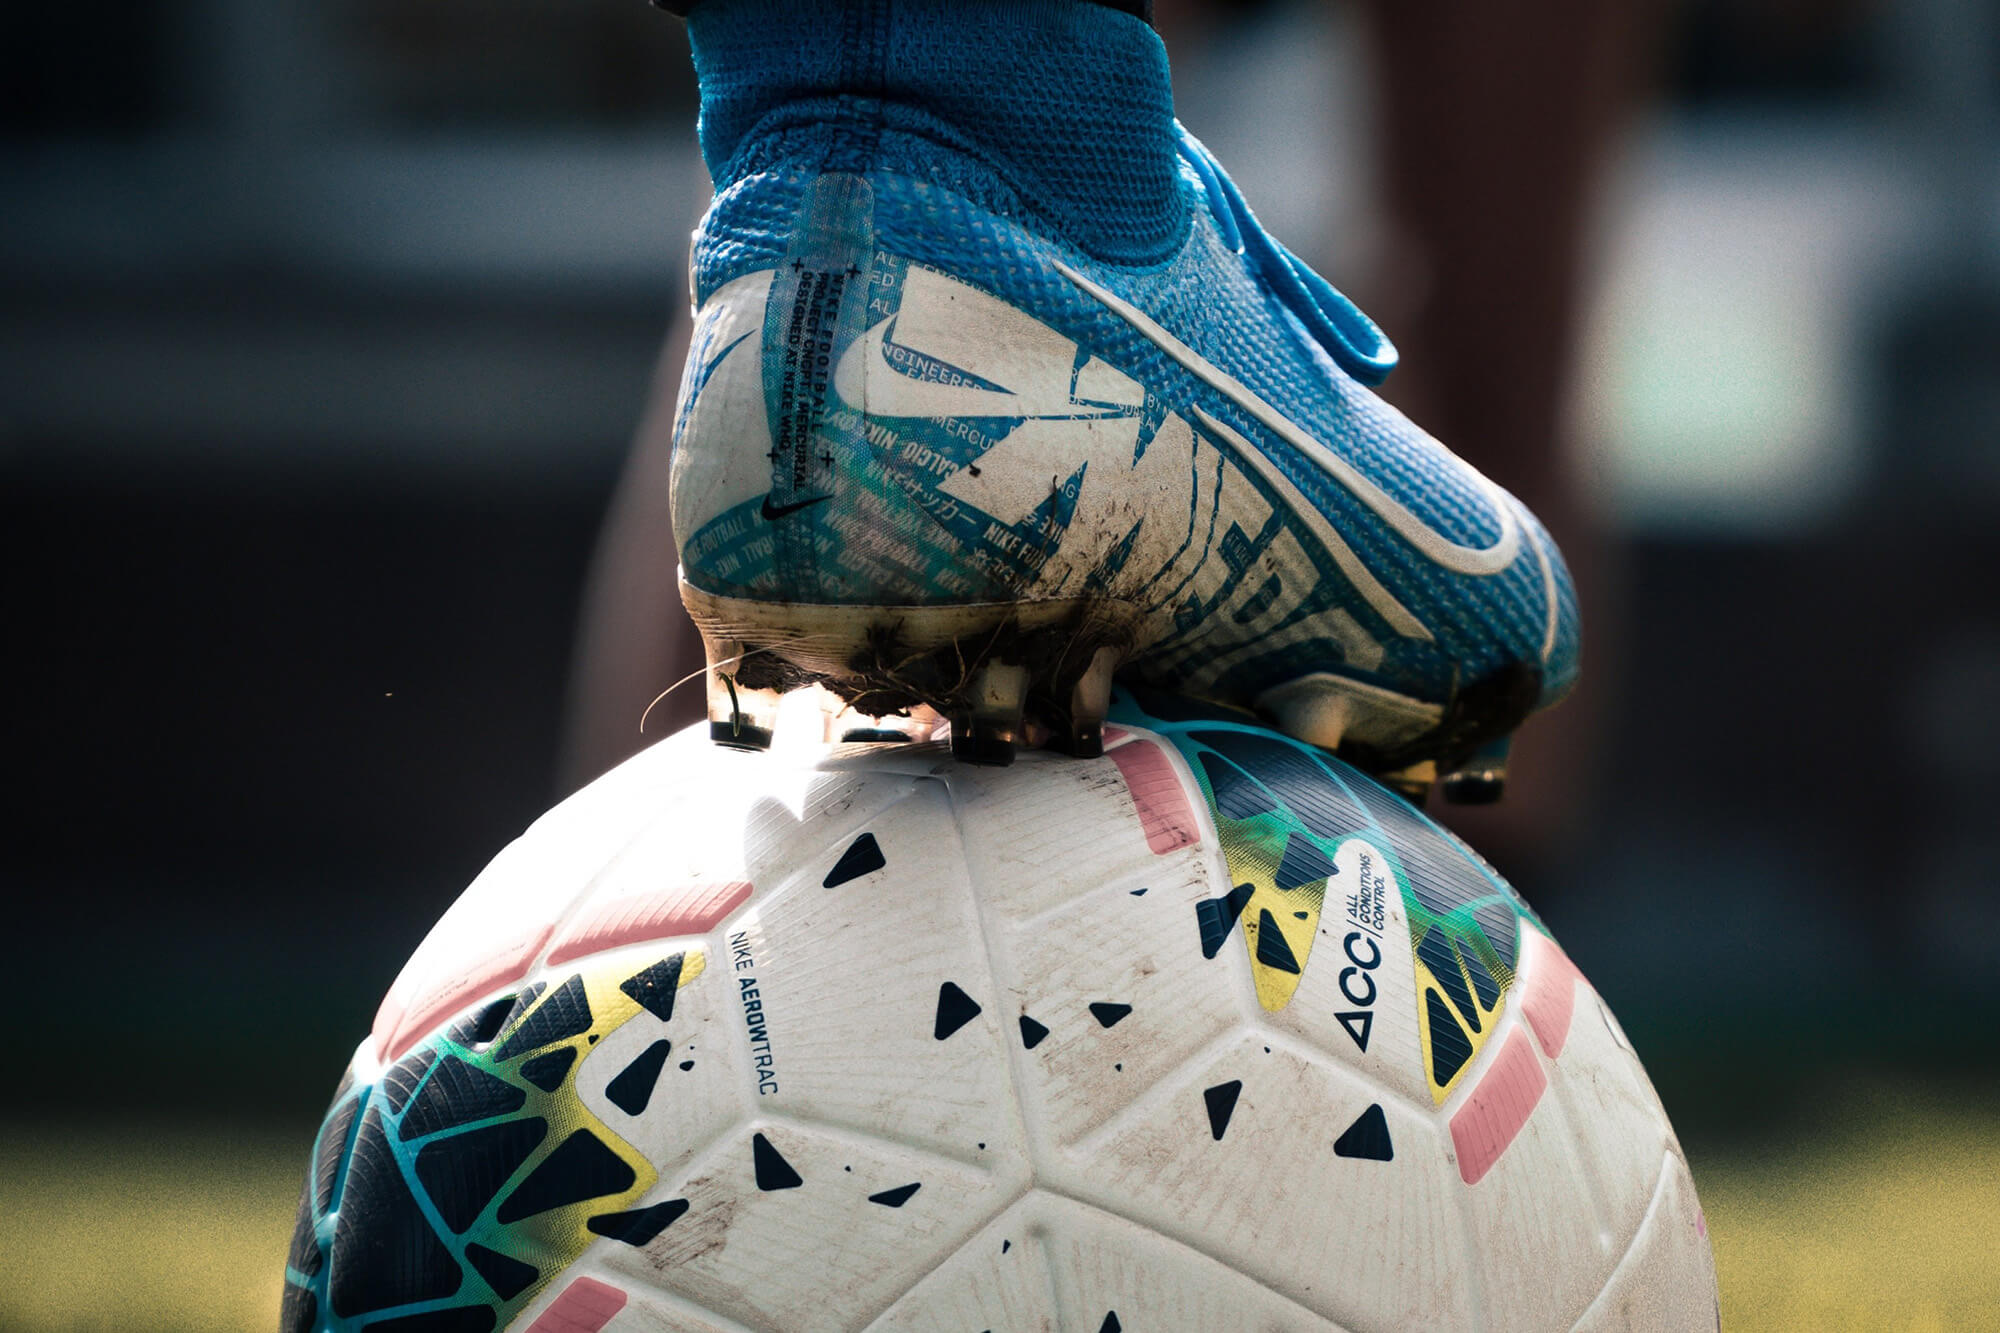 A foot with a football boot resting on top of a football.